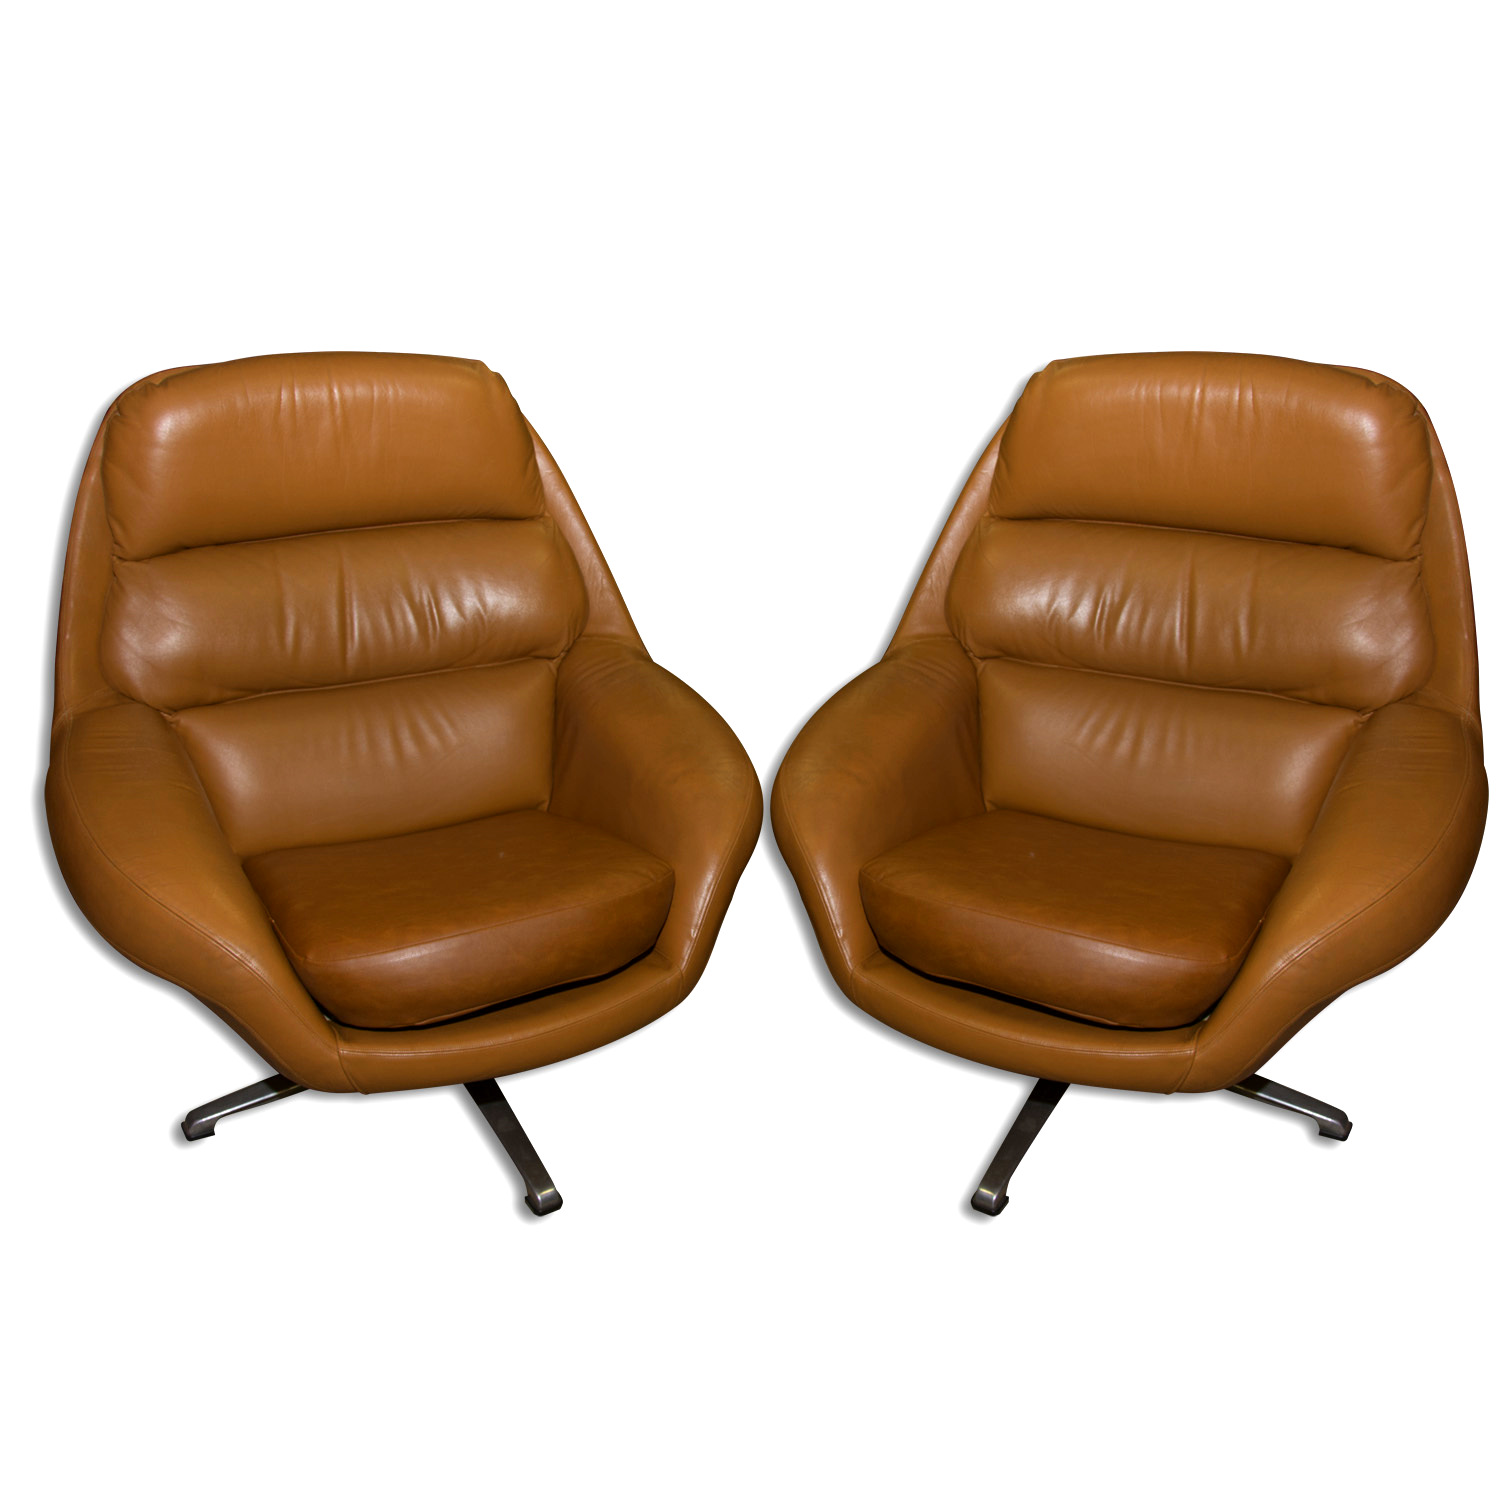 Miraculous Pair Of Scandinavian Swivel Armchairs In Leather 1970S Ibusinesslaw Wood Chair Design Ideas Ibusinesslaworg